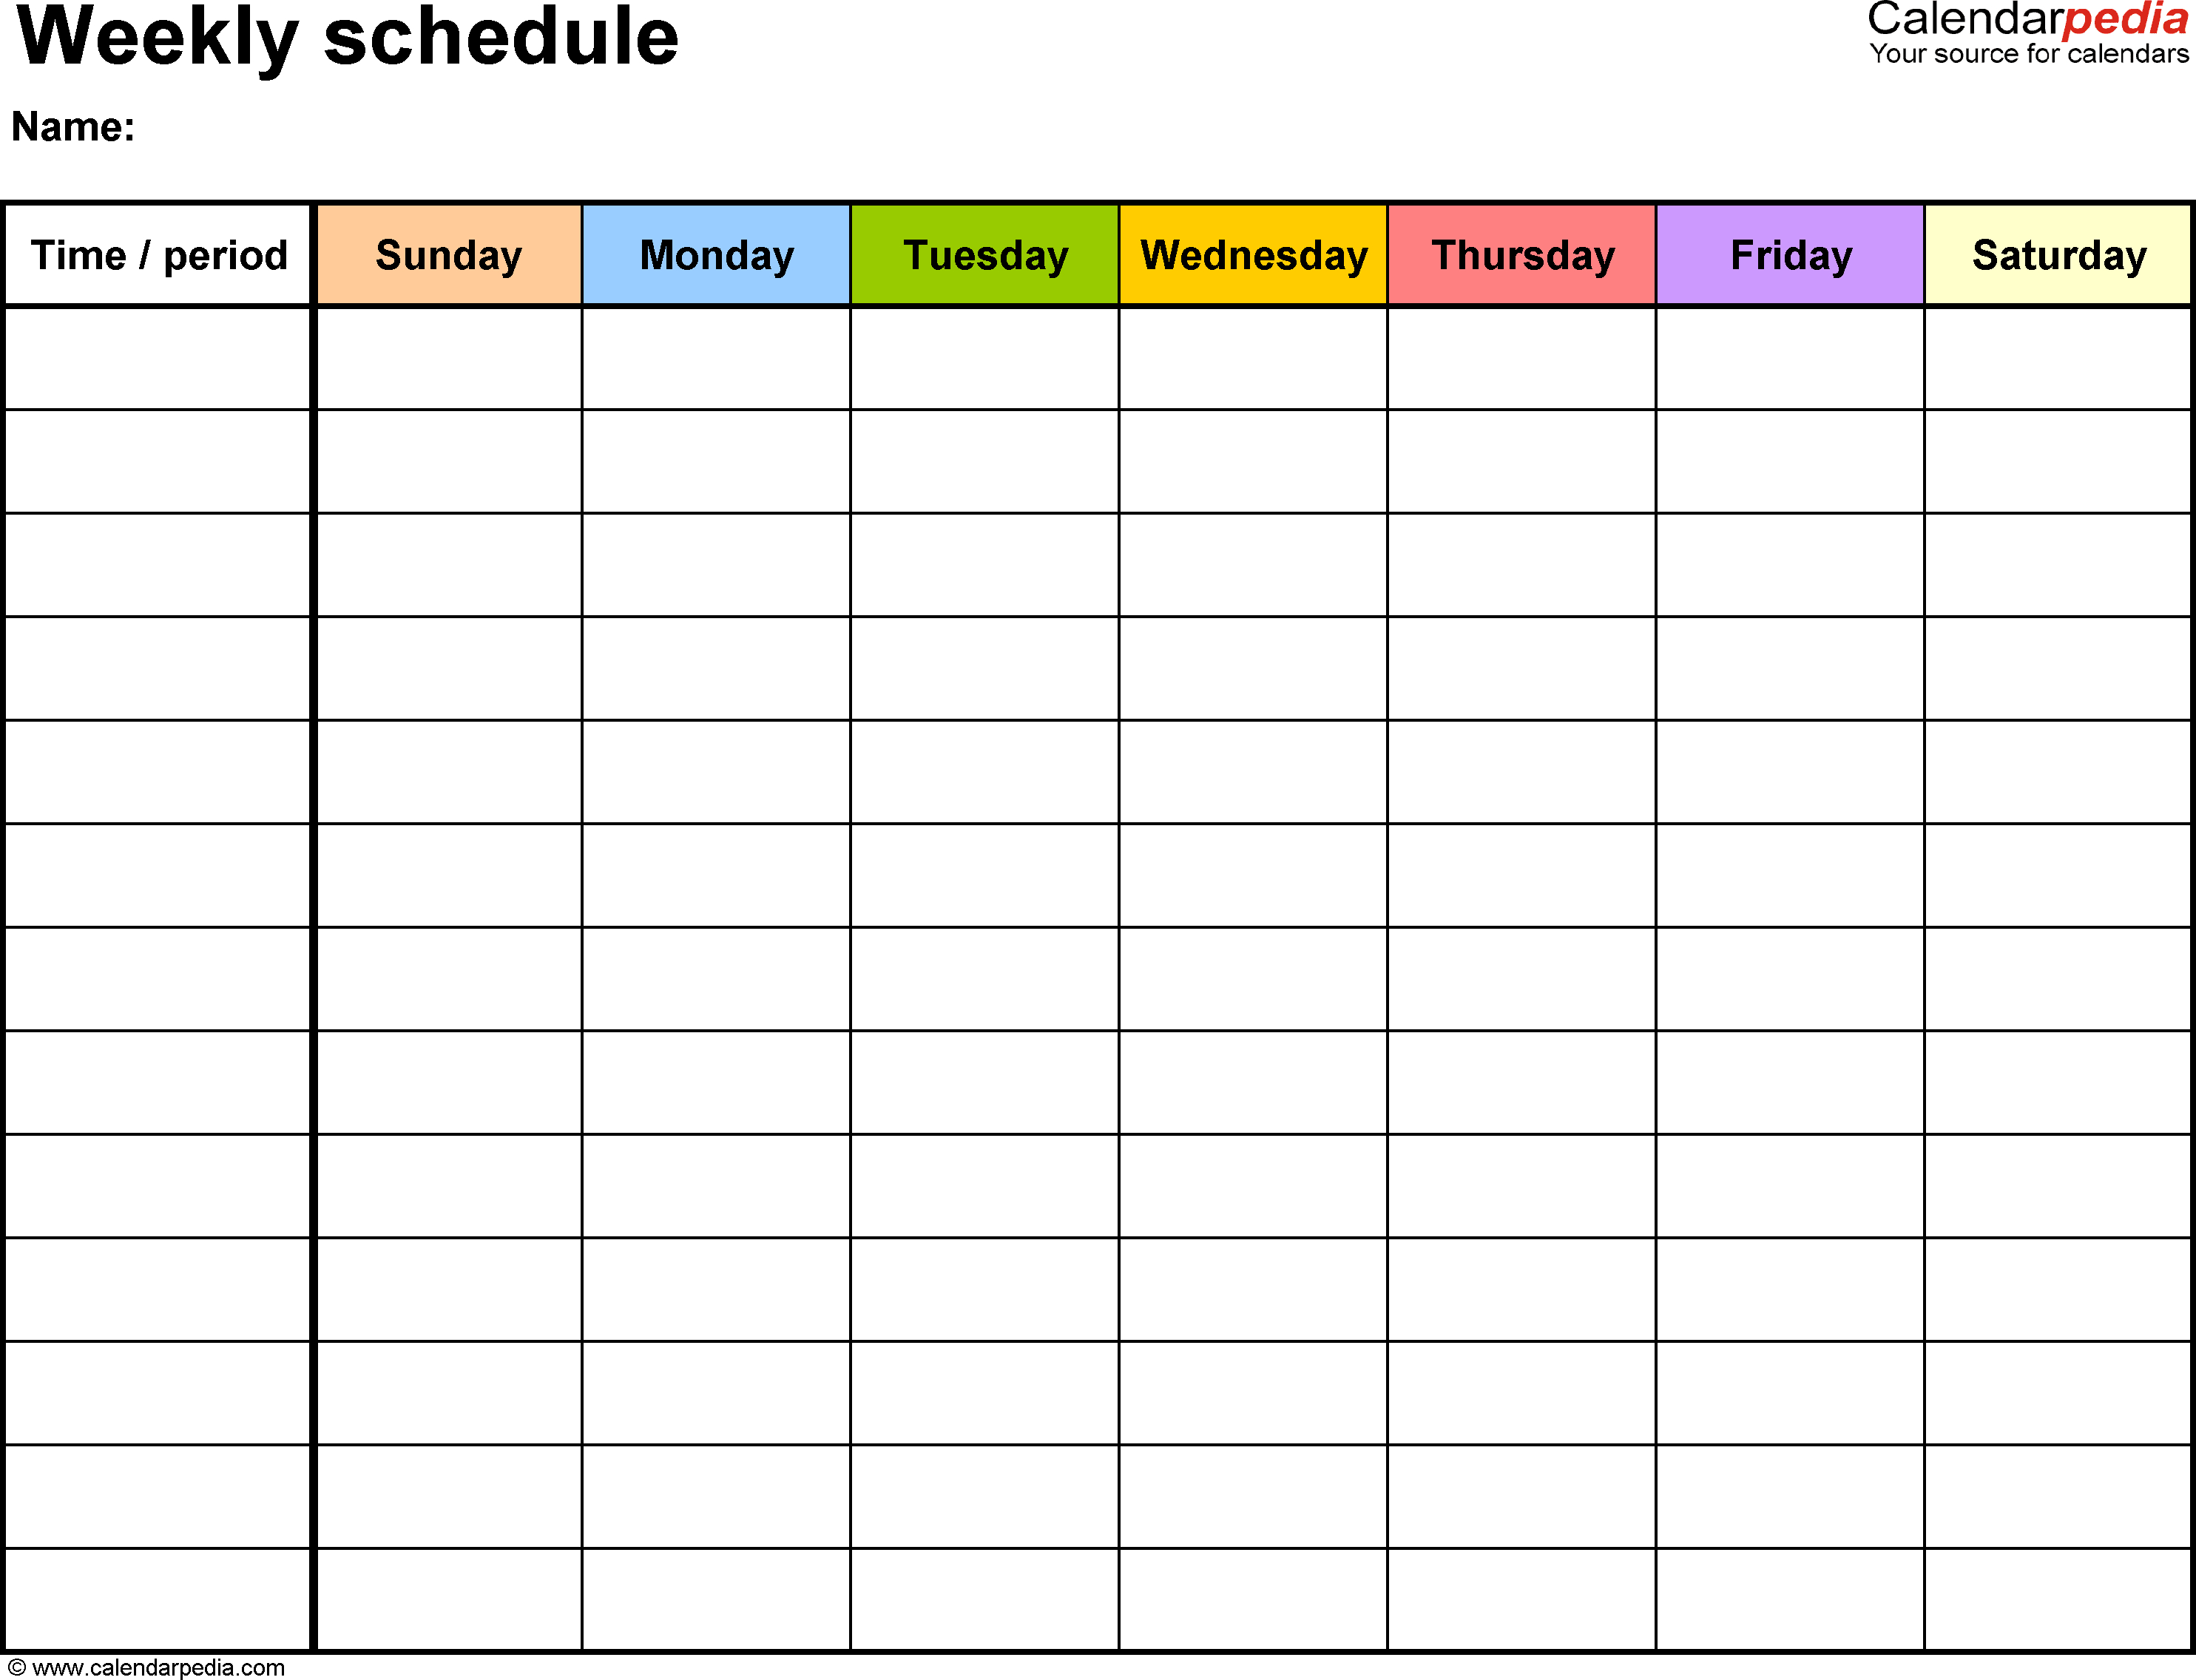 Weekly Schedule Template For Word Version 13: Landscape, 1 Blank 7 Day Calendar Template